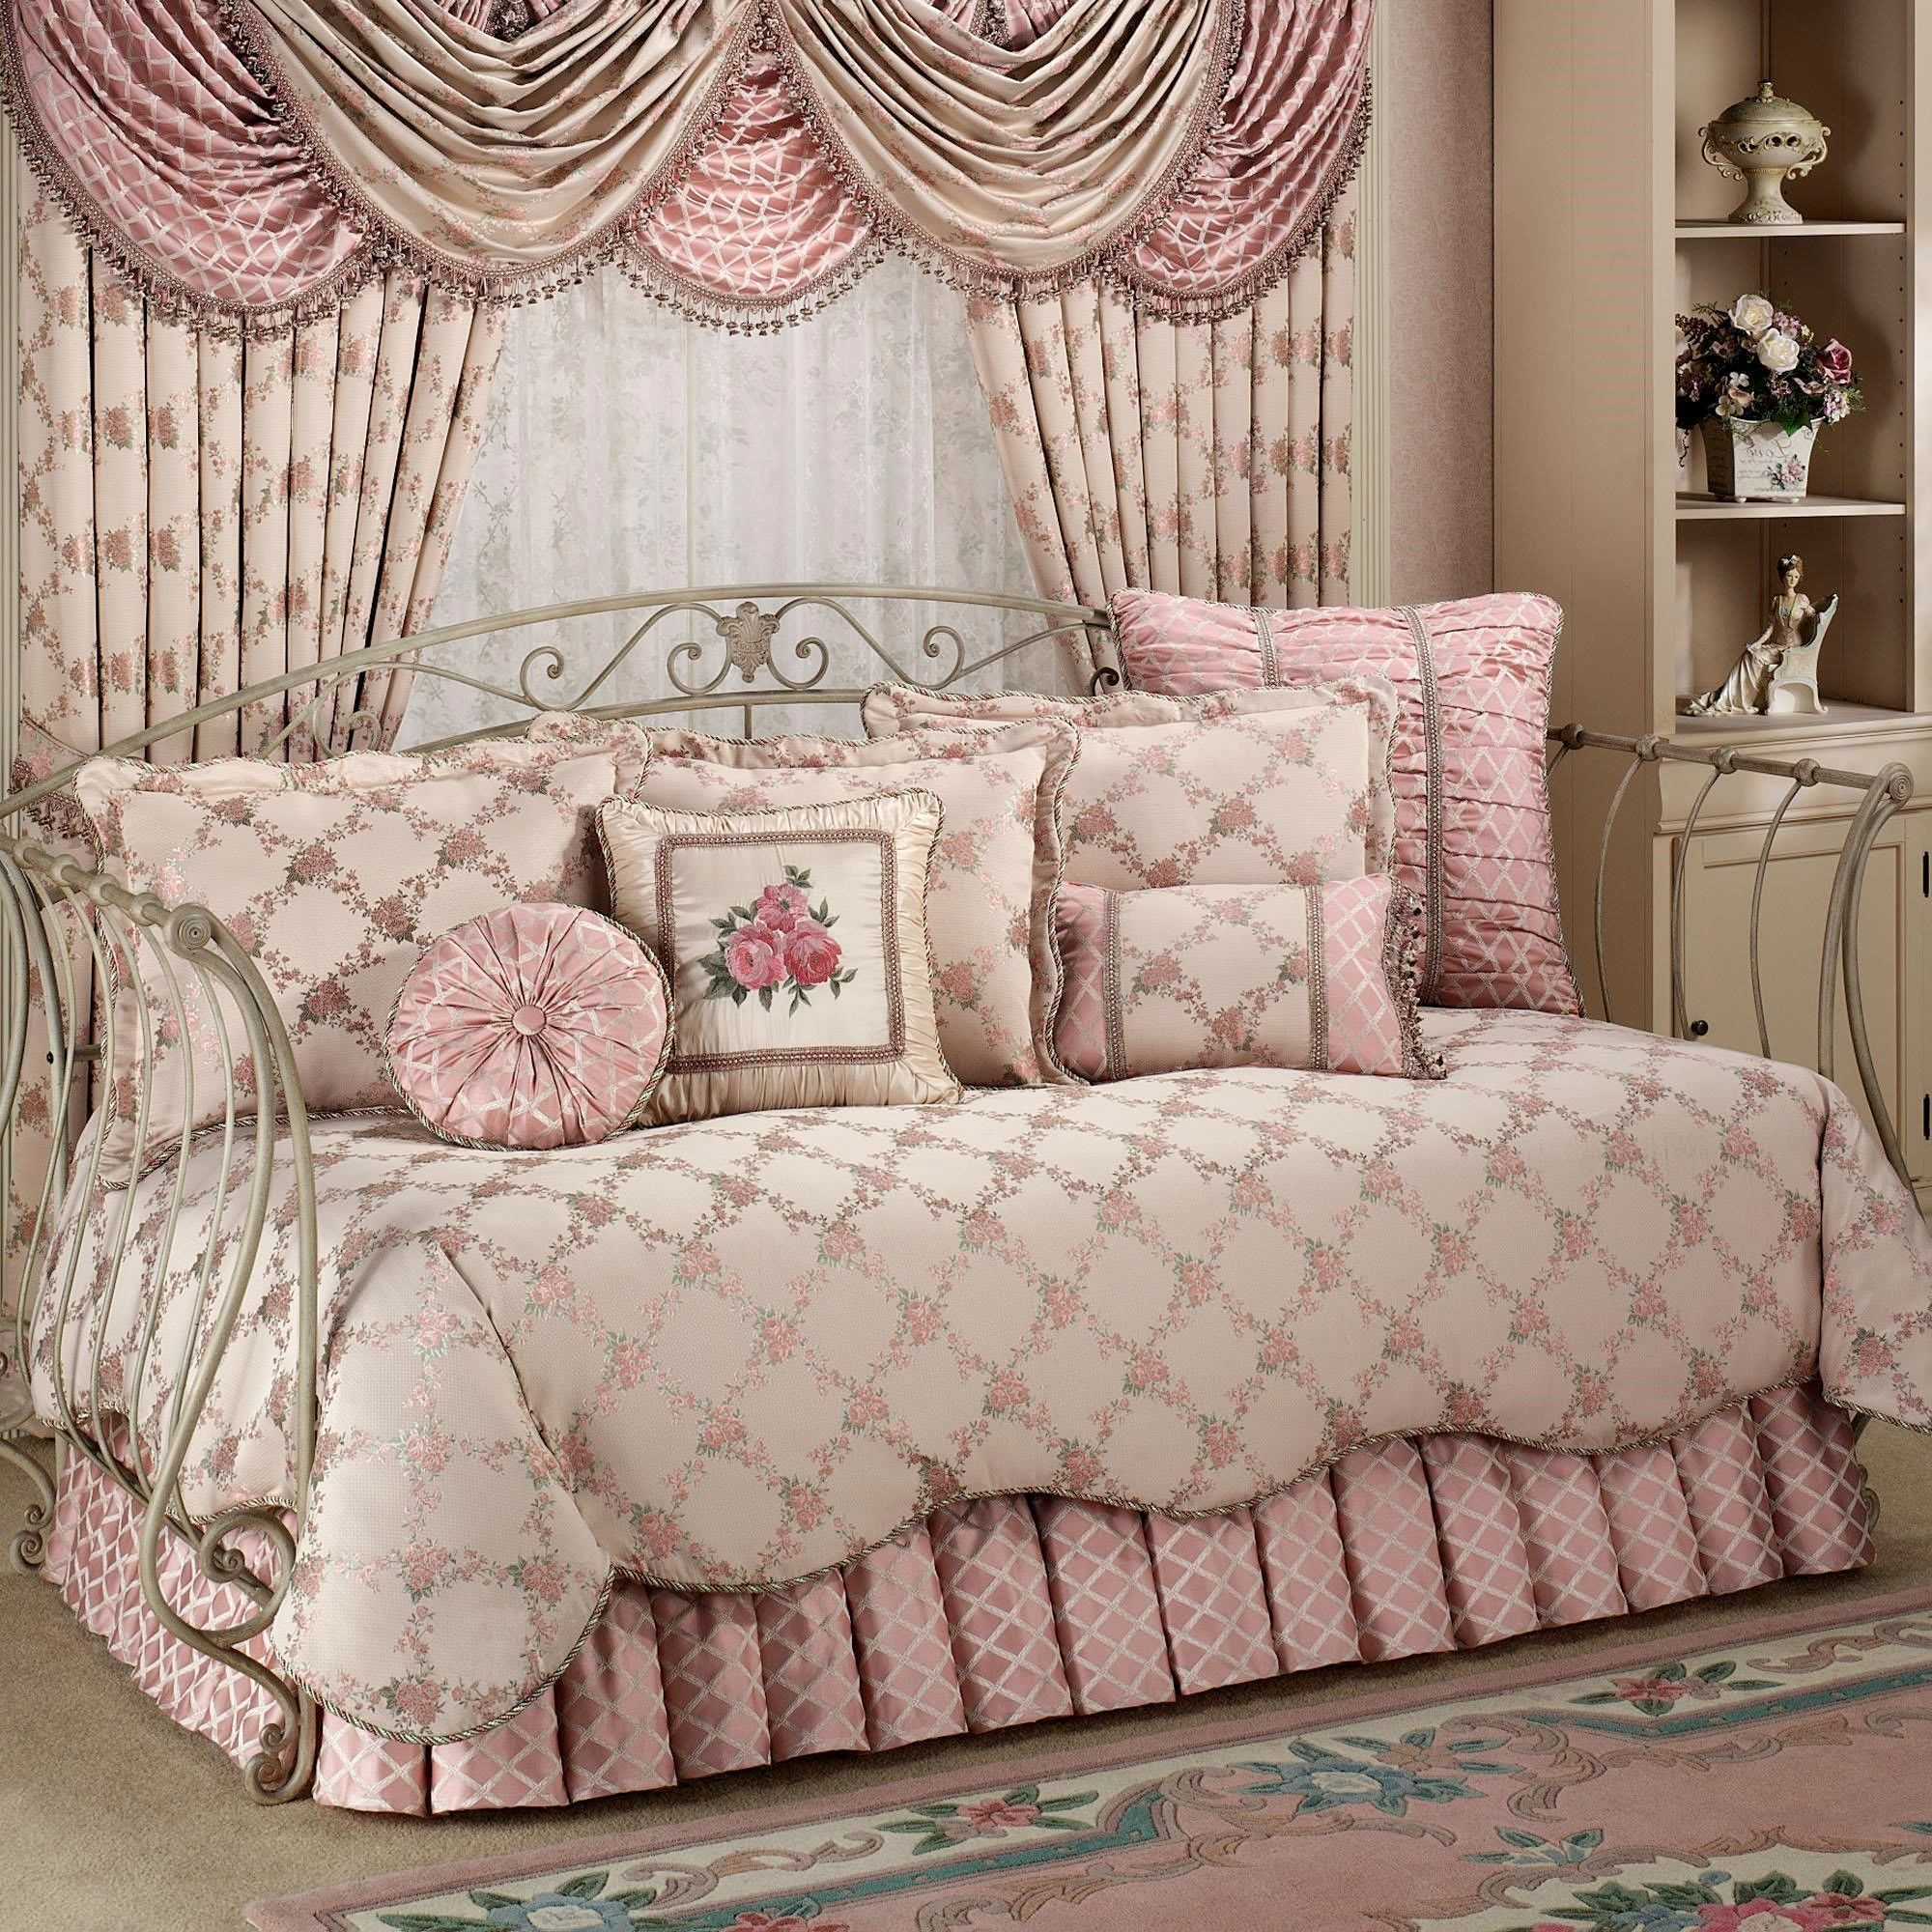 - Daybed Bedding For Girls Daybed Mattress, Daybed Bedding Sets, Bed